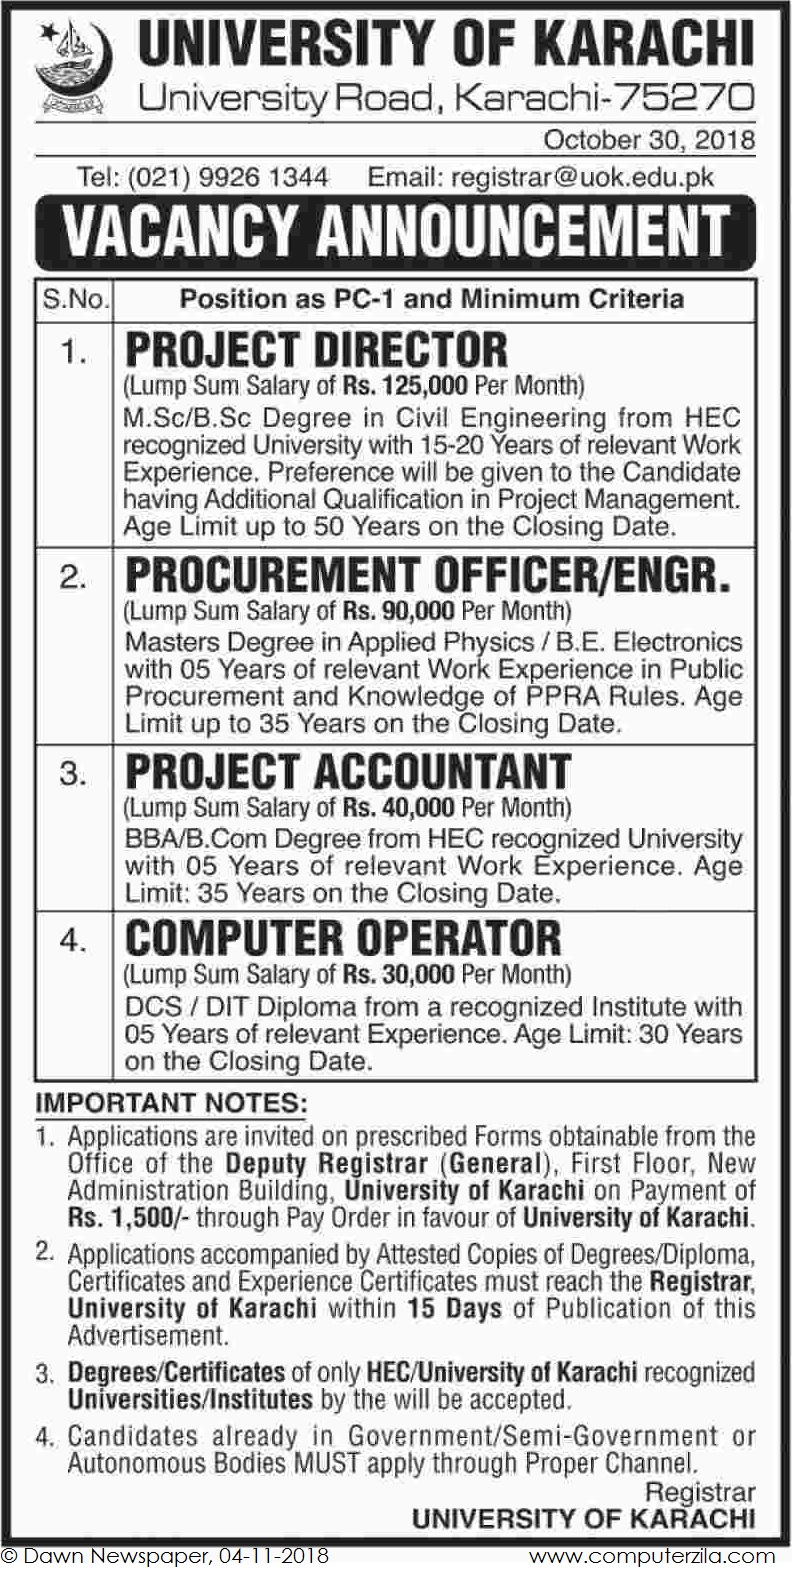 Vacancy Announcement at University of Karachi